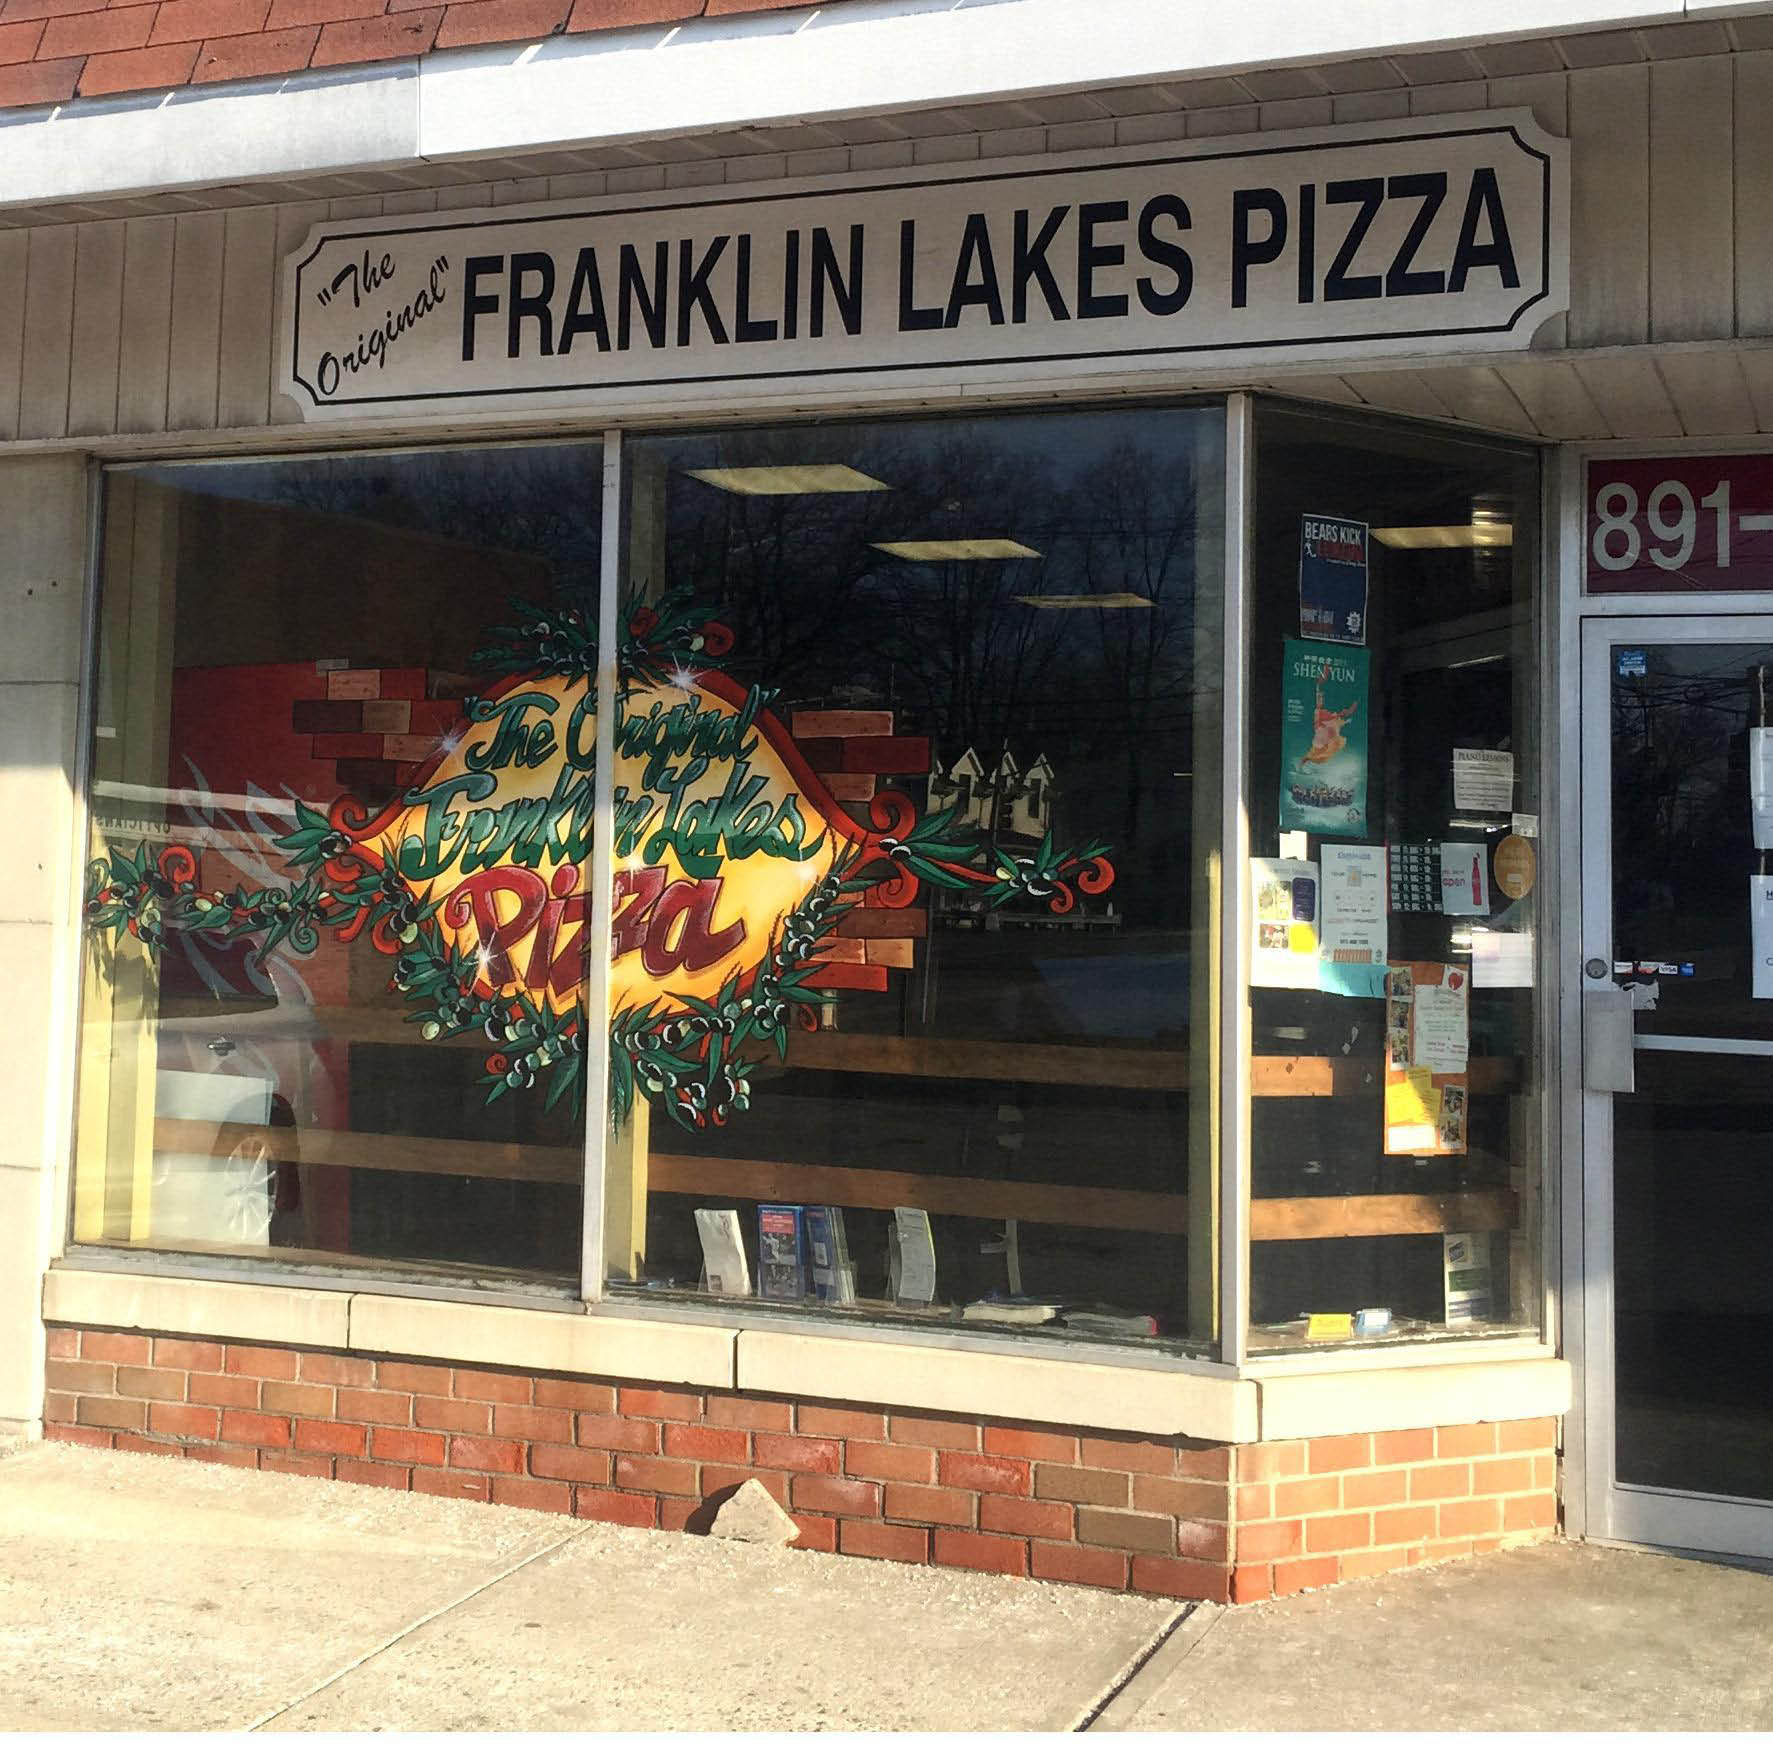 lakes in nj pizza specials Bergen County pizza coupons near me Franklin Lakes New Jersey who delivers pizza to my address Franklin Lakes NJ pizza specials near me Franklin Lakes New Jersey pizza home delivery Franklin Lakes